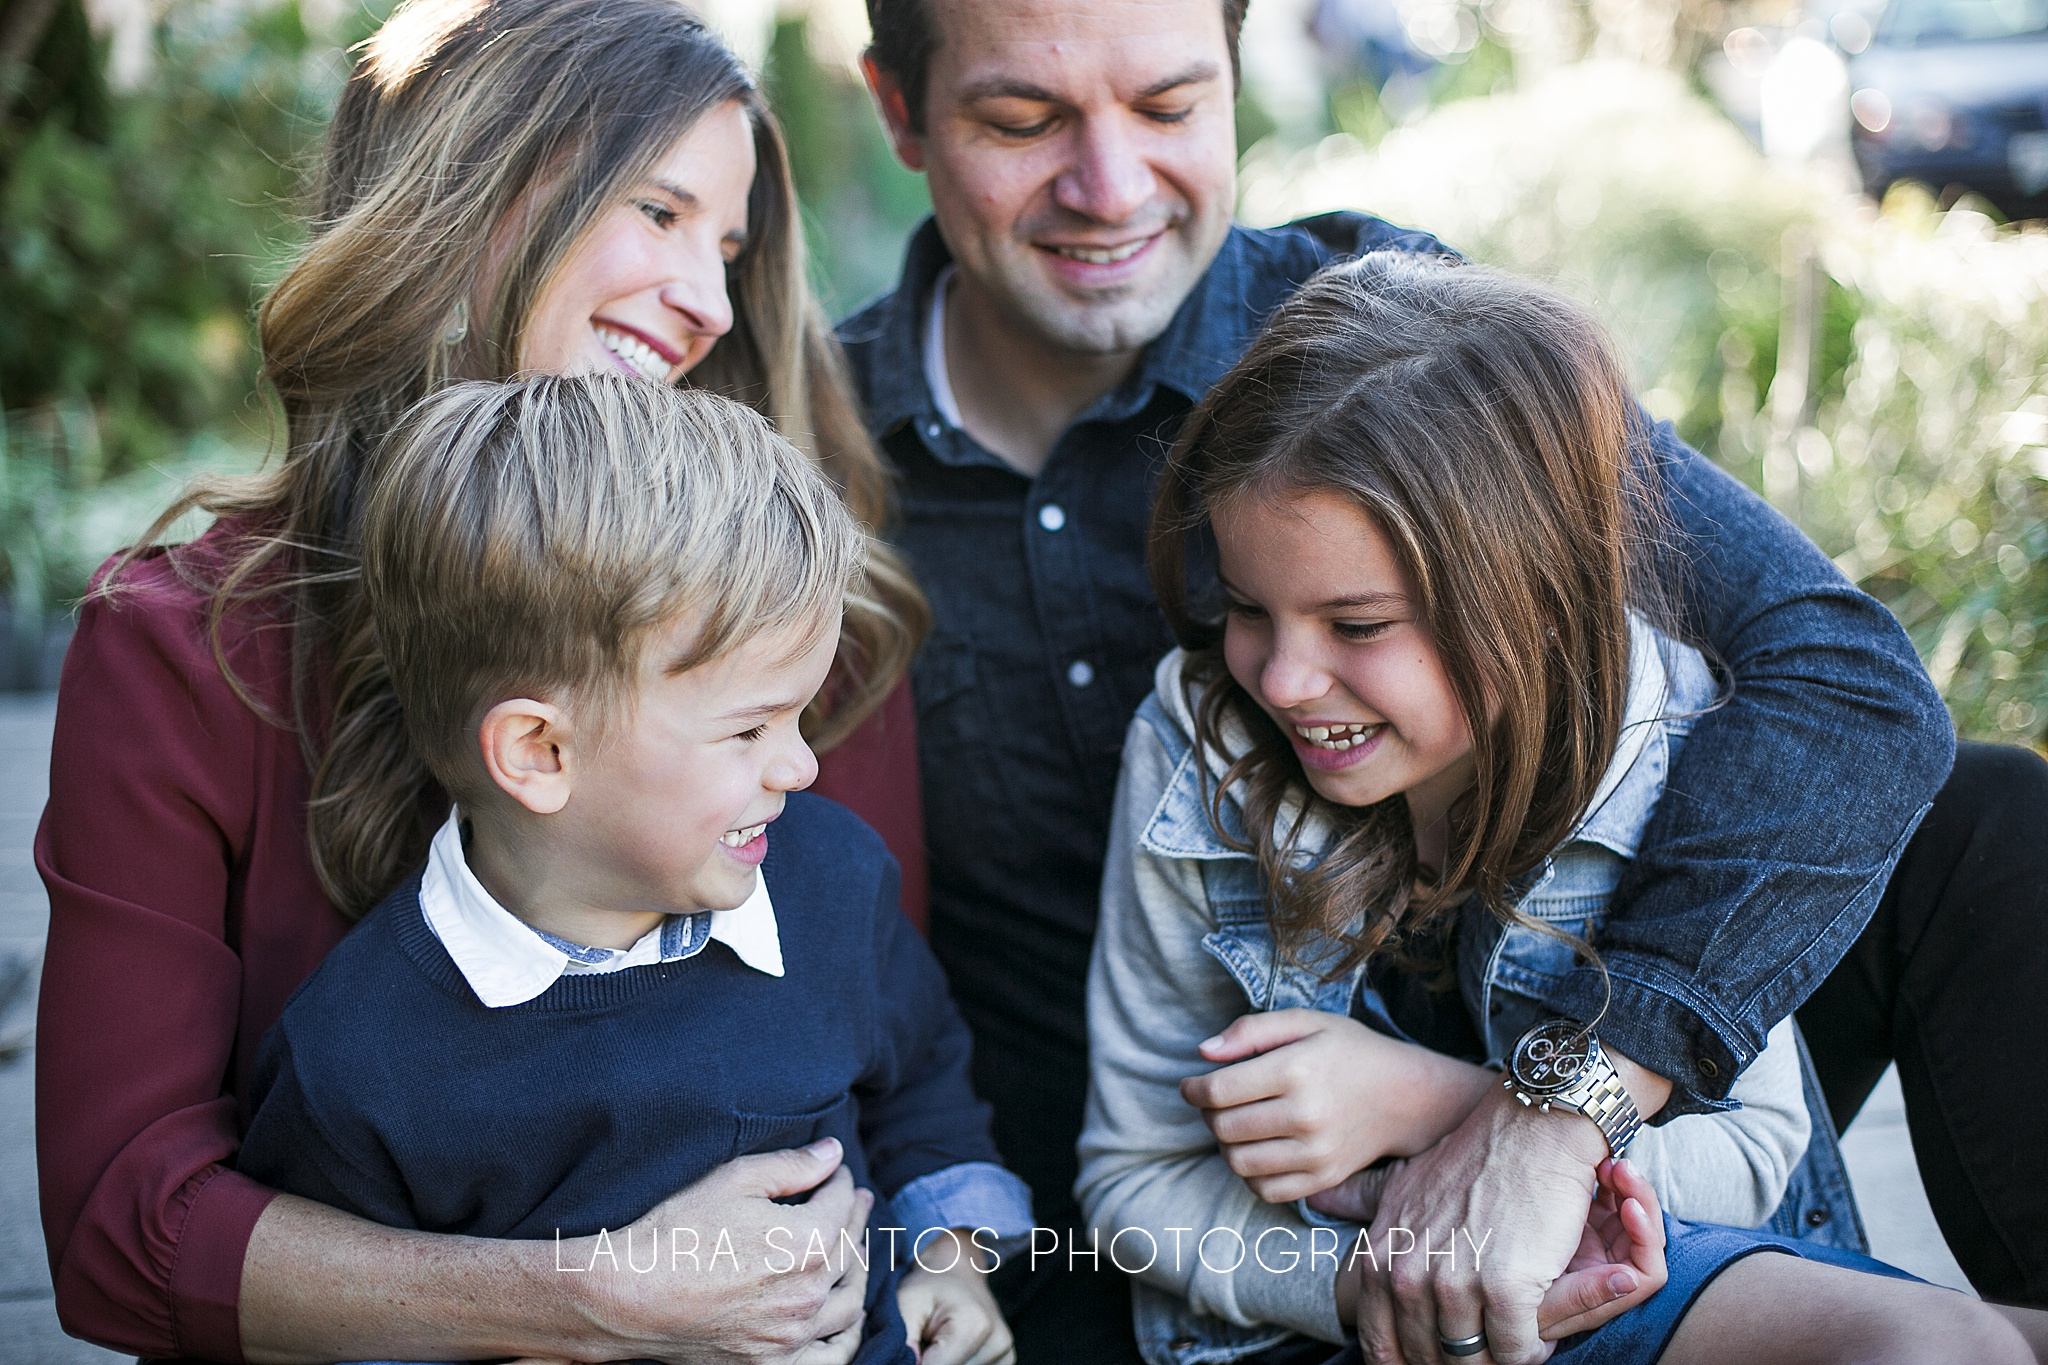 Laura Santos Photography Portland Oregon Family Photographer_0635.jpg